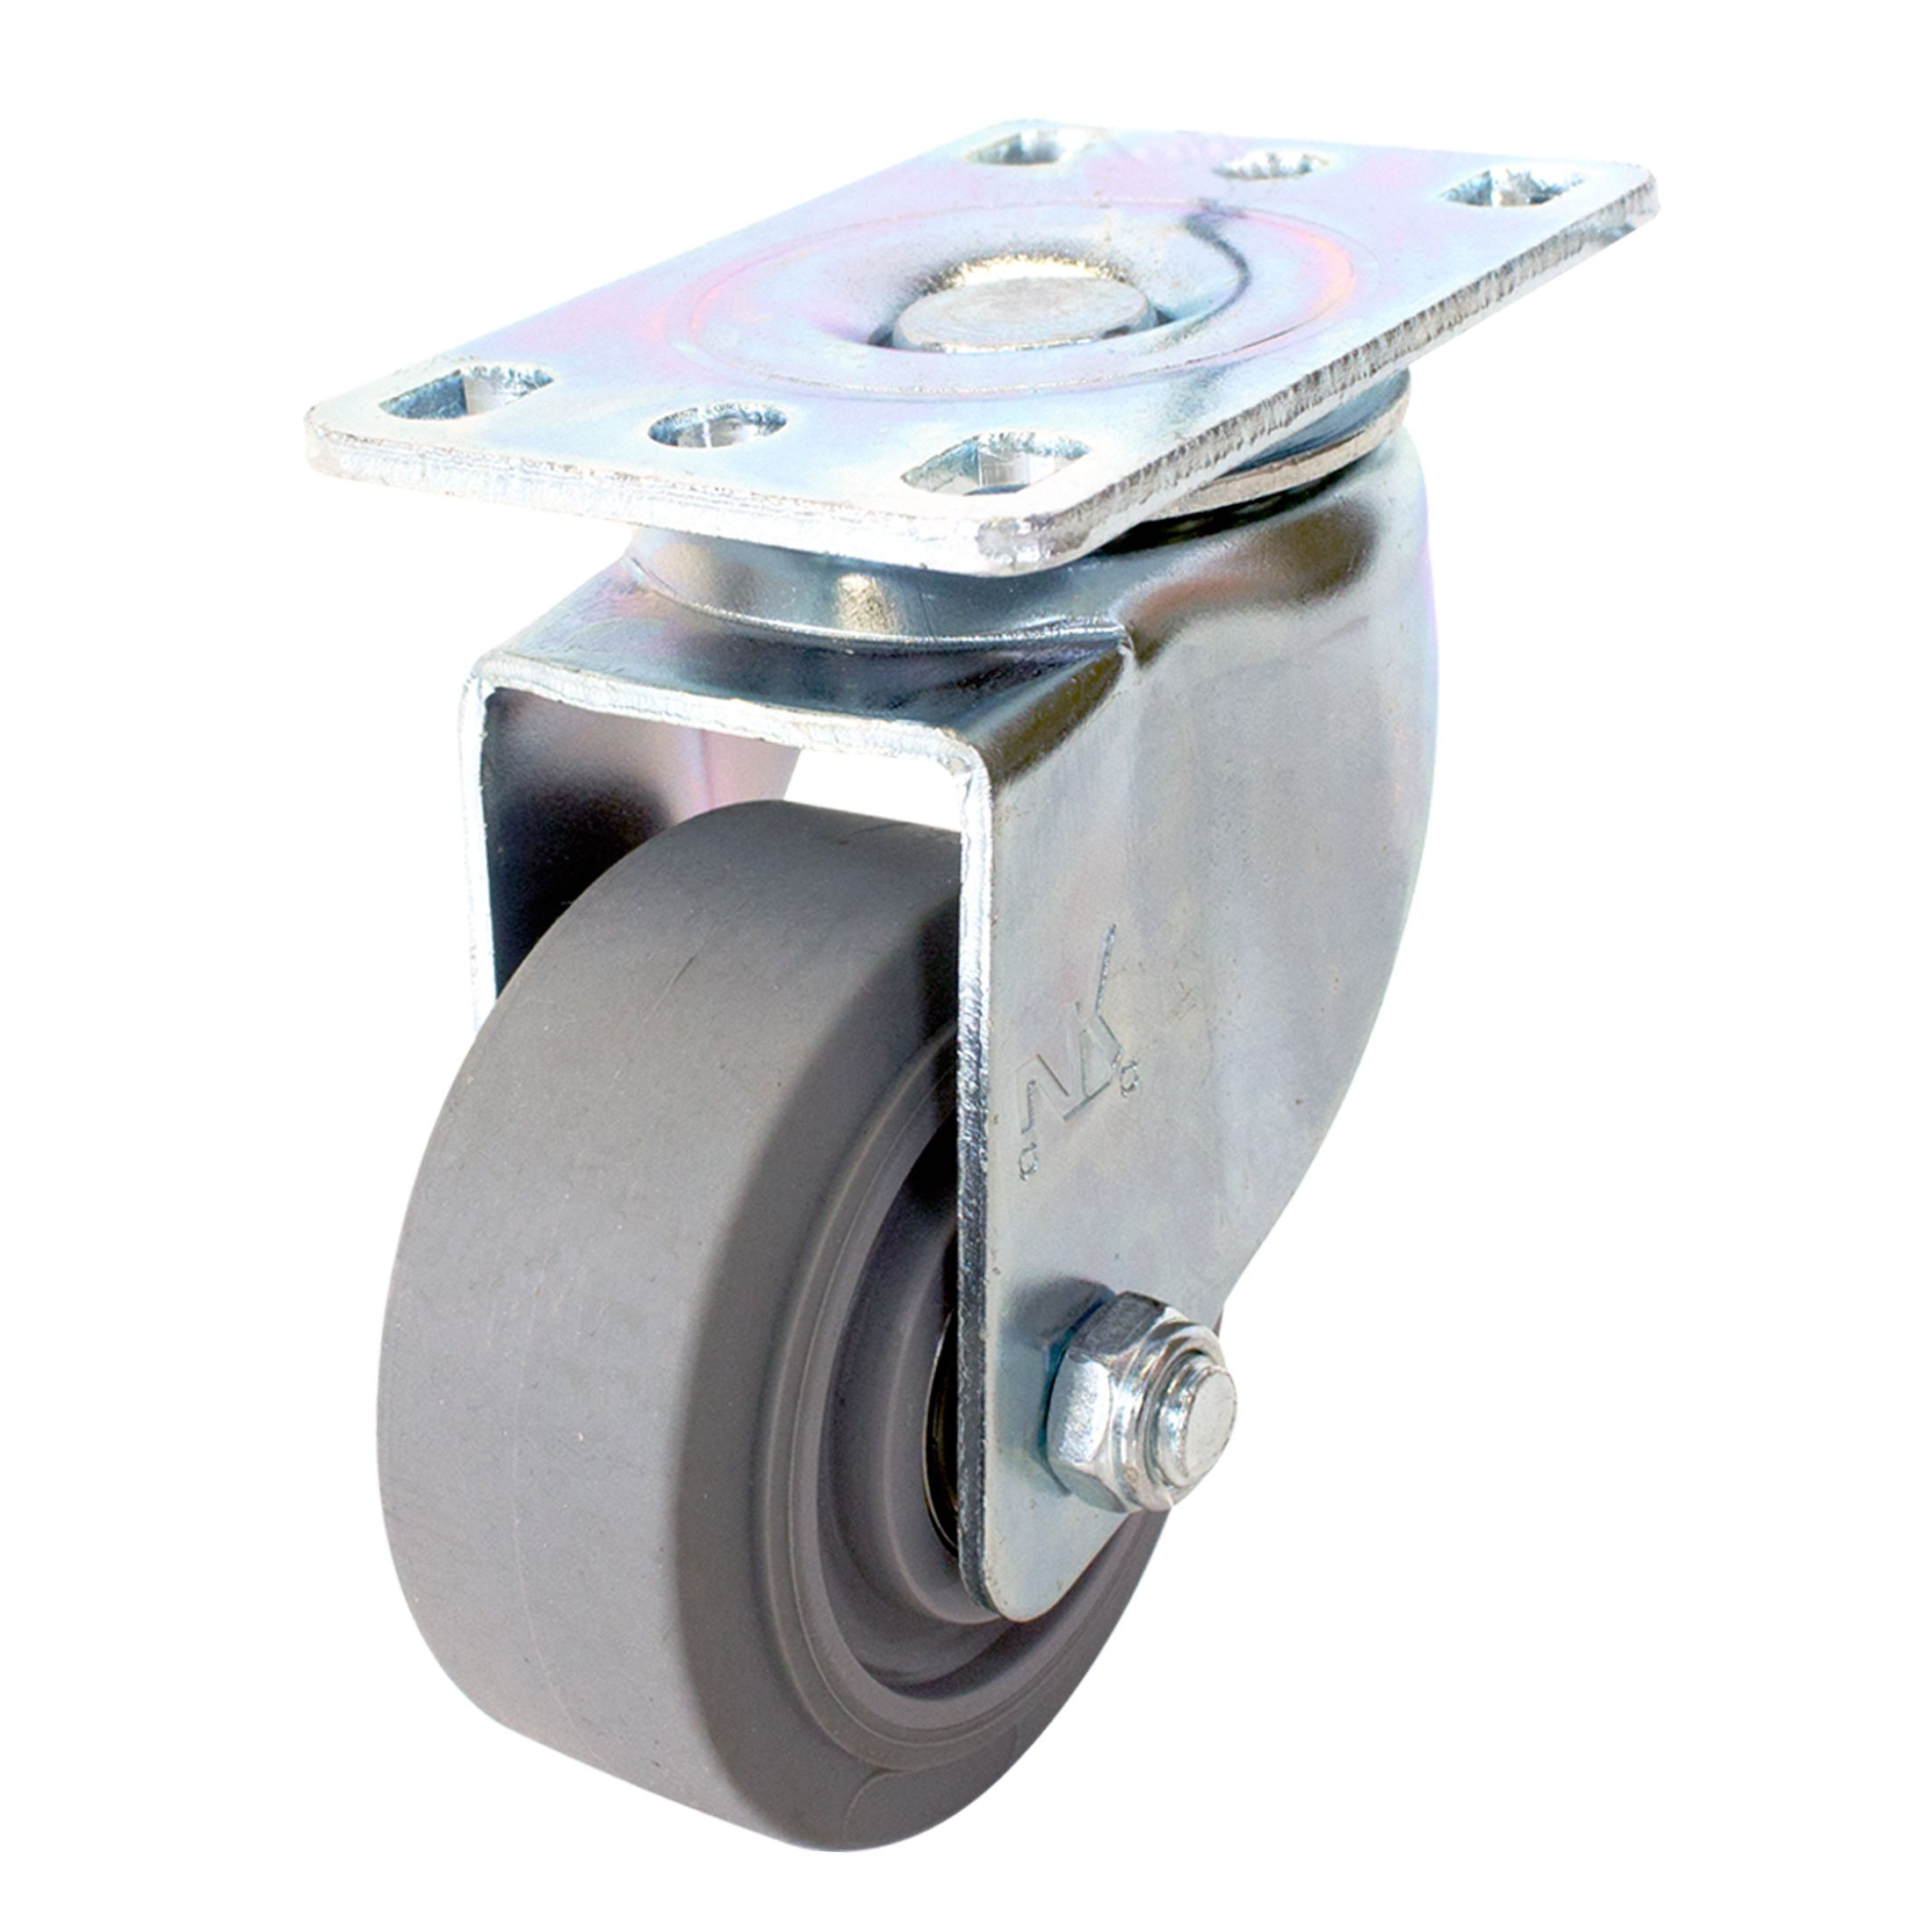 NK CTPR3SS Swivel Plate Caster with Non Marking Soft Gray Rubber TPR Wheel (3 -Inch, Swivel Caster)